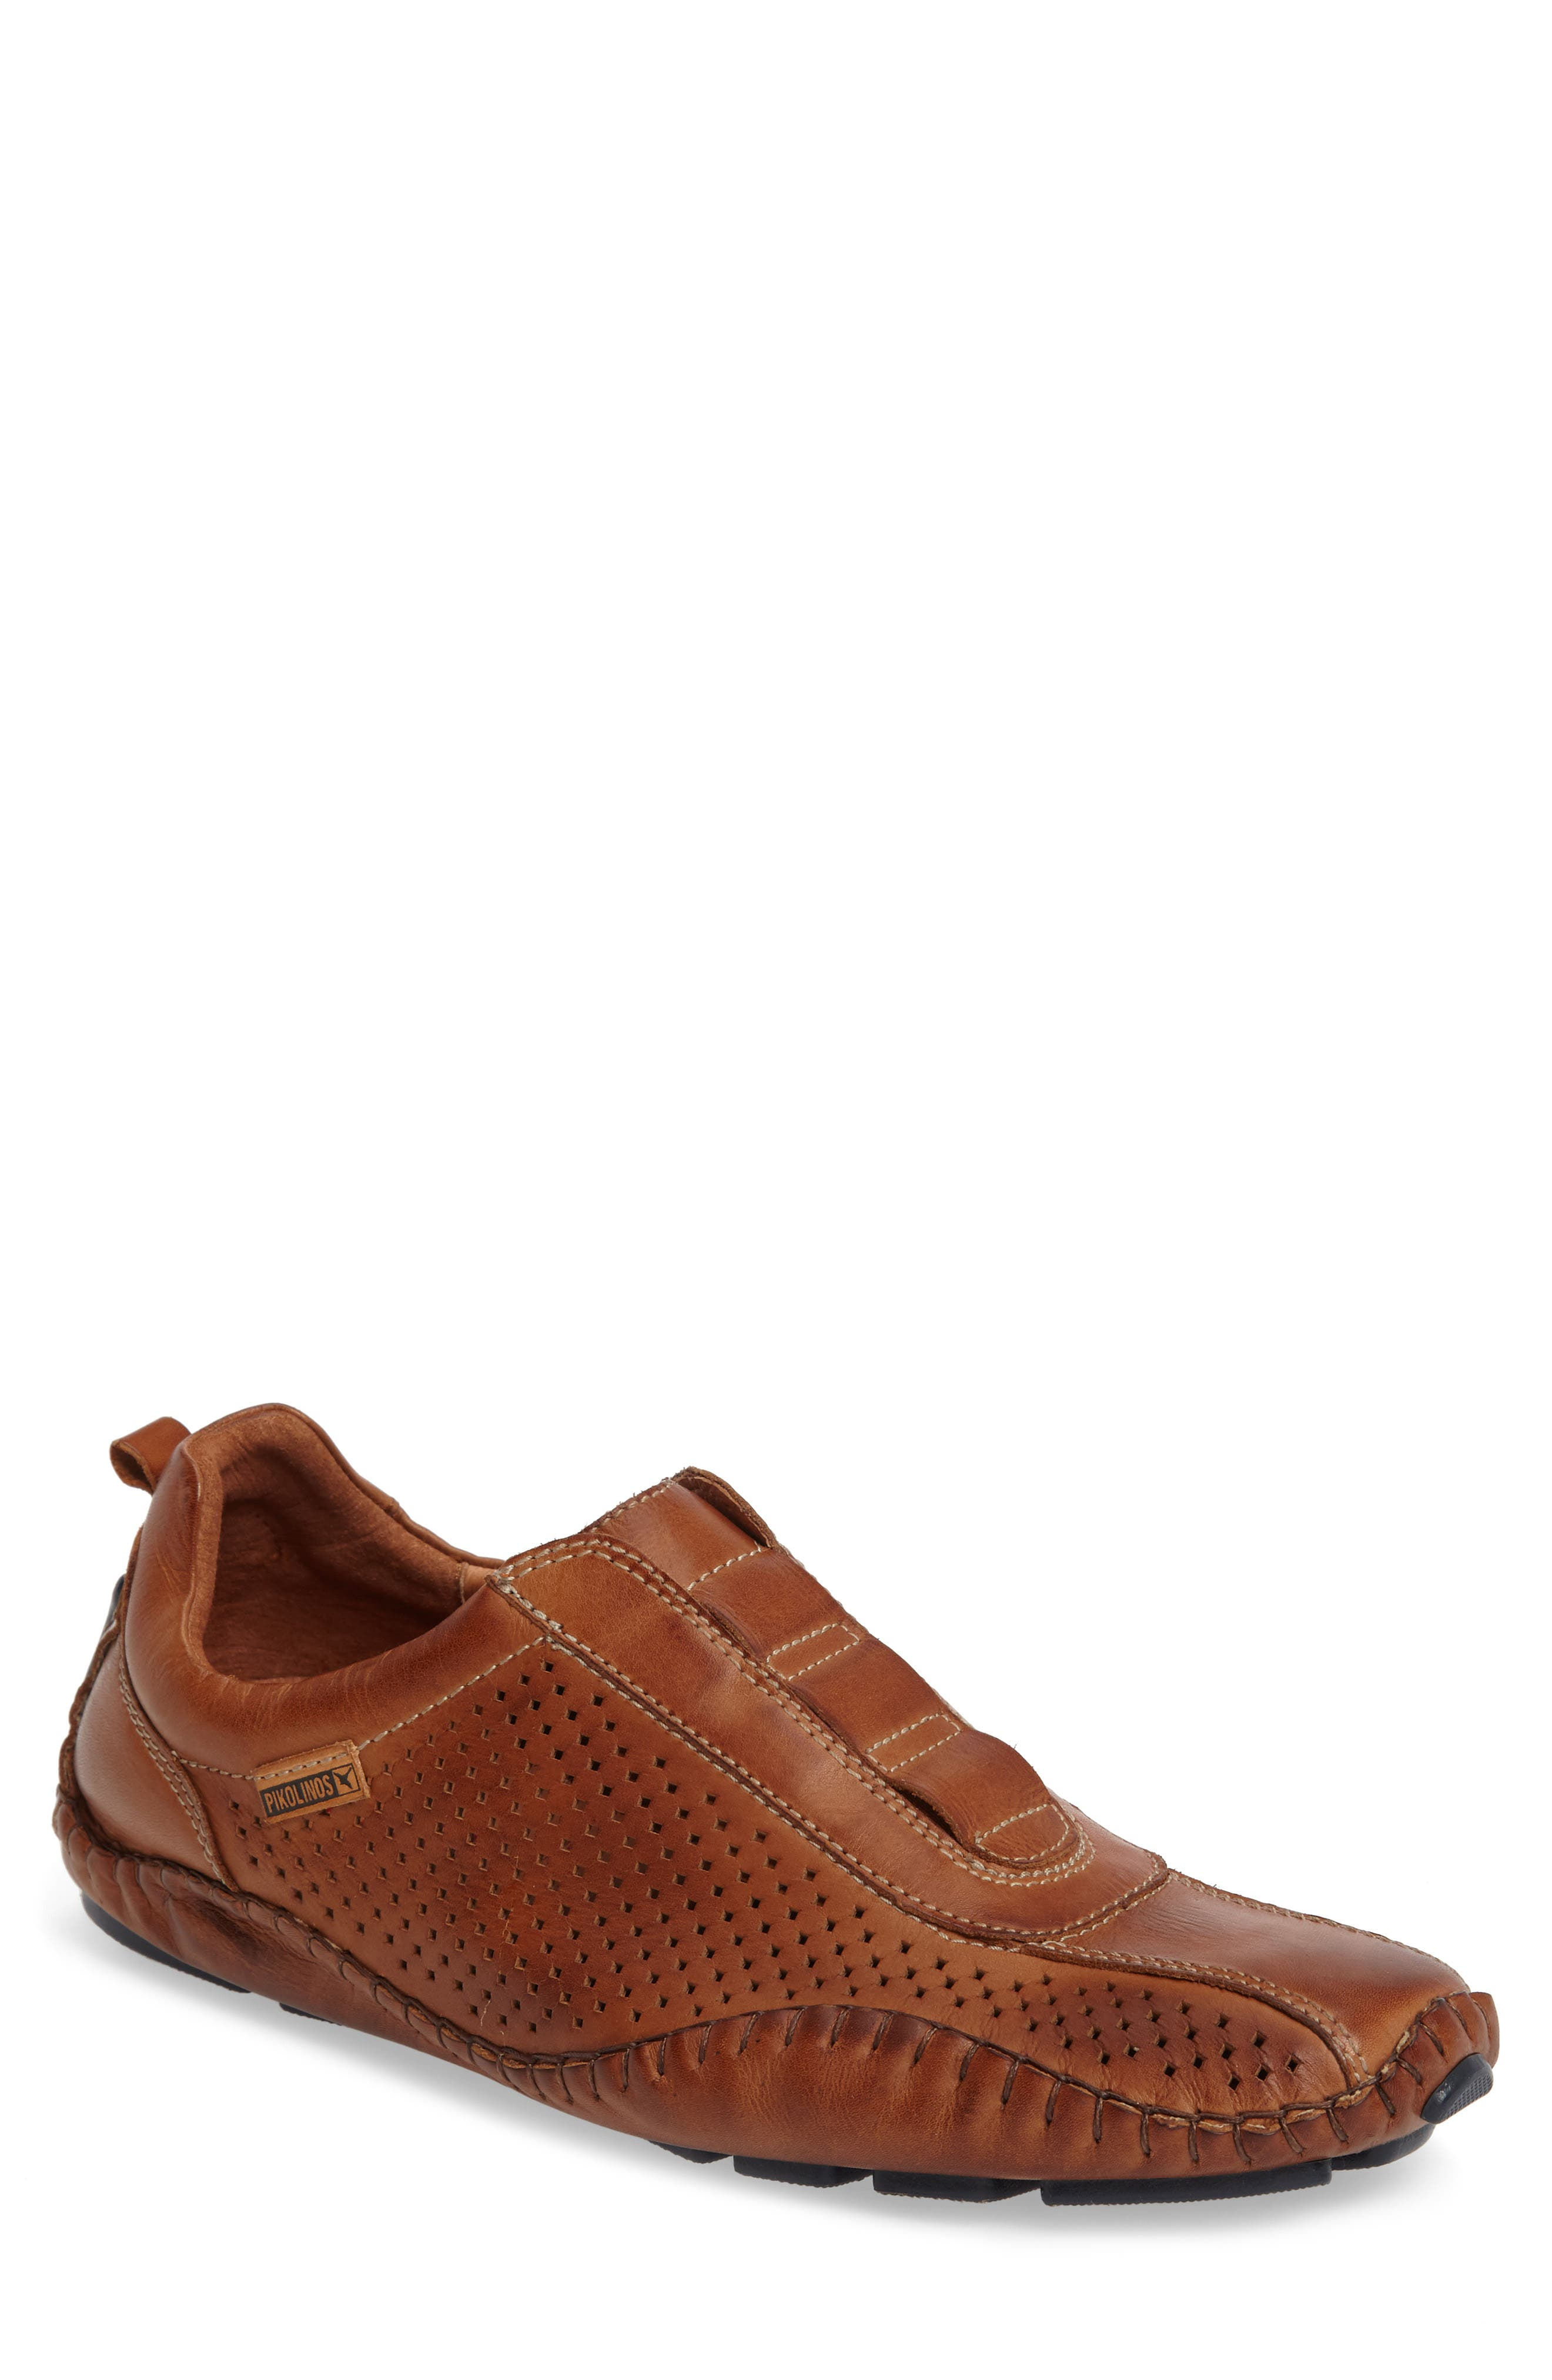 Fuencarral Driving Shoe,                         Main,                         color, Brandy Leather